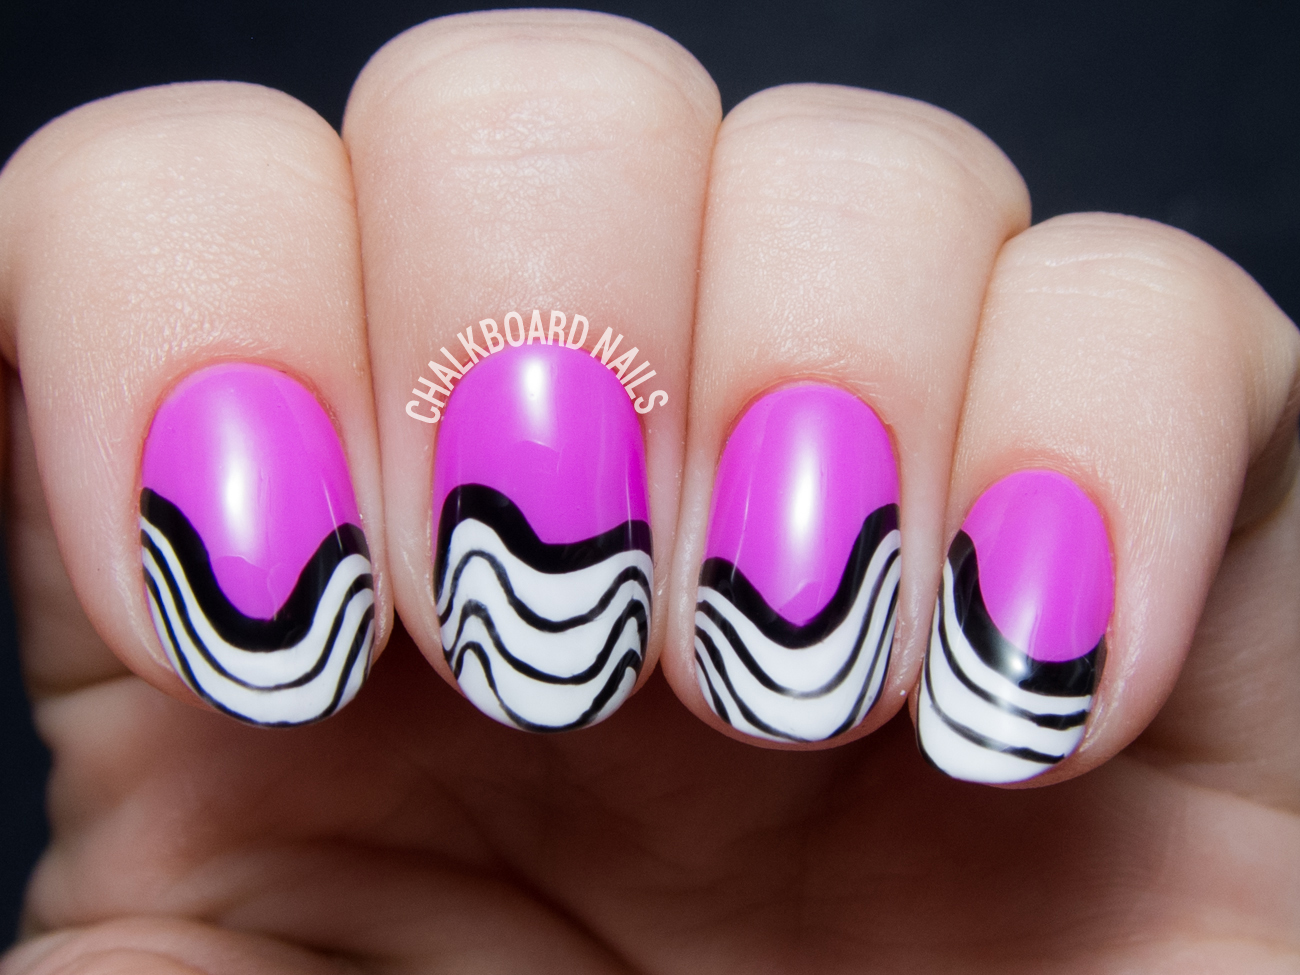 Wavy freehand gel nail art by @chalkboardnails